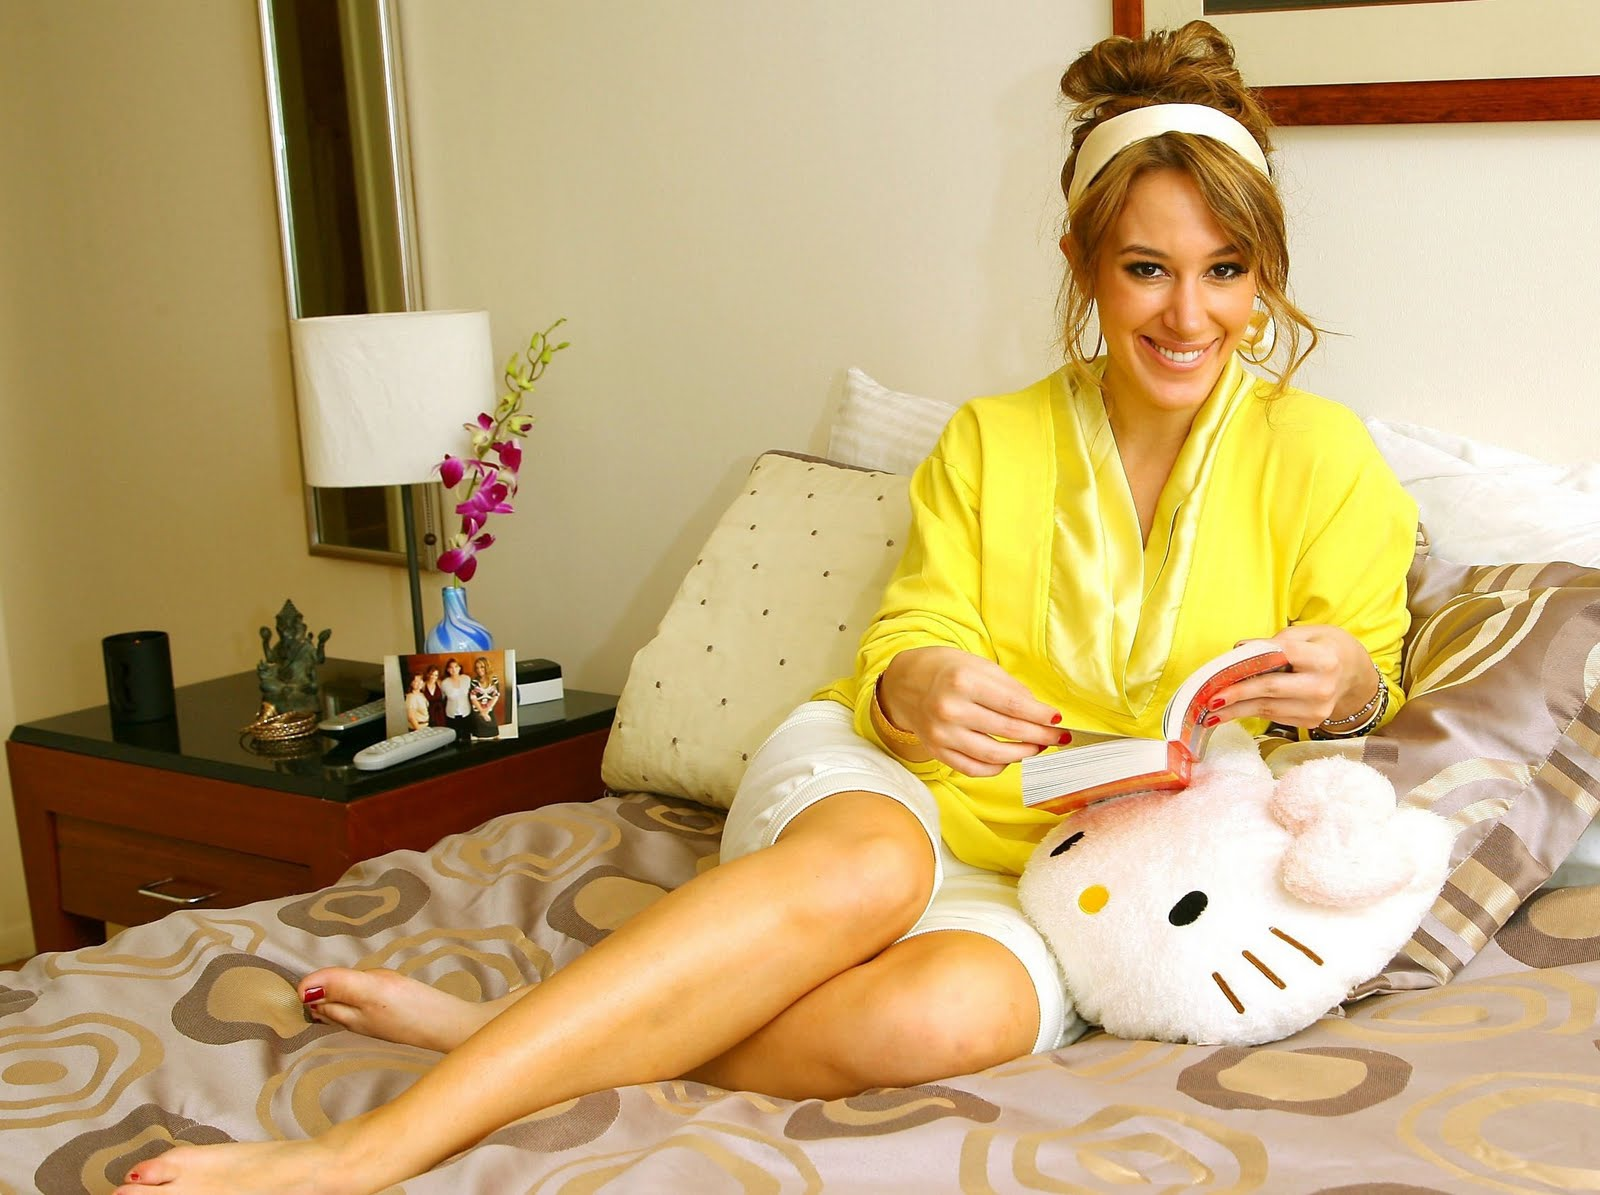 To download the Haylie Duff Wallpaper Hot just Right Click on the ...